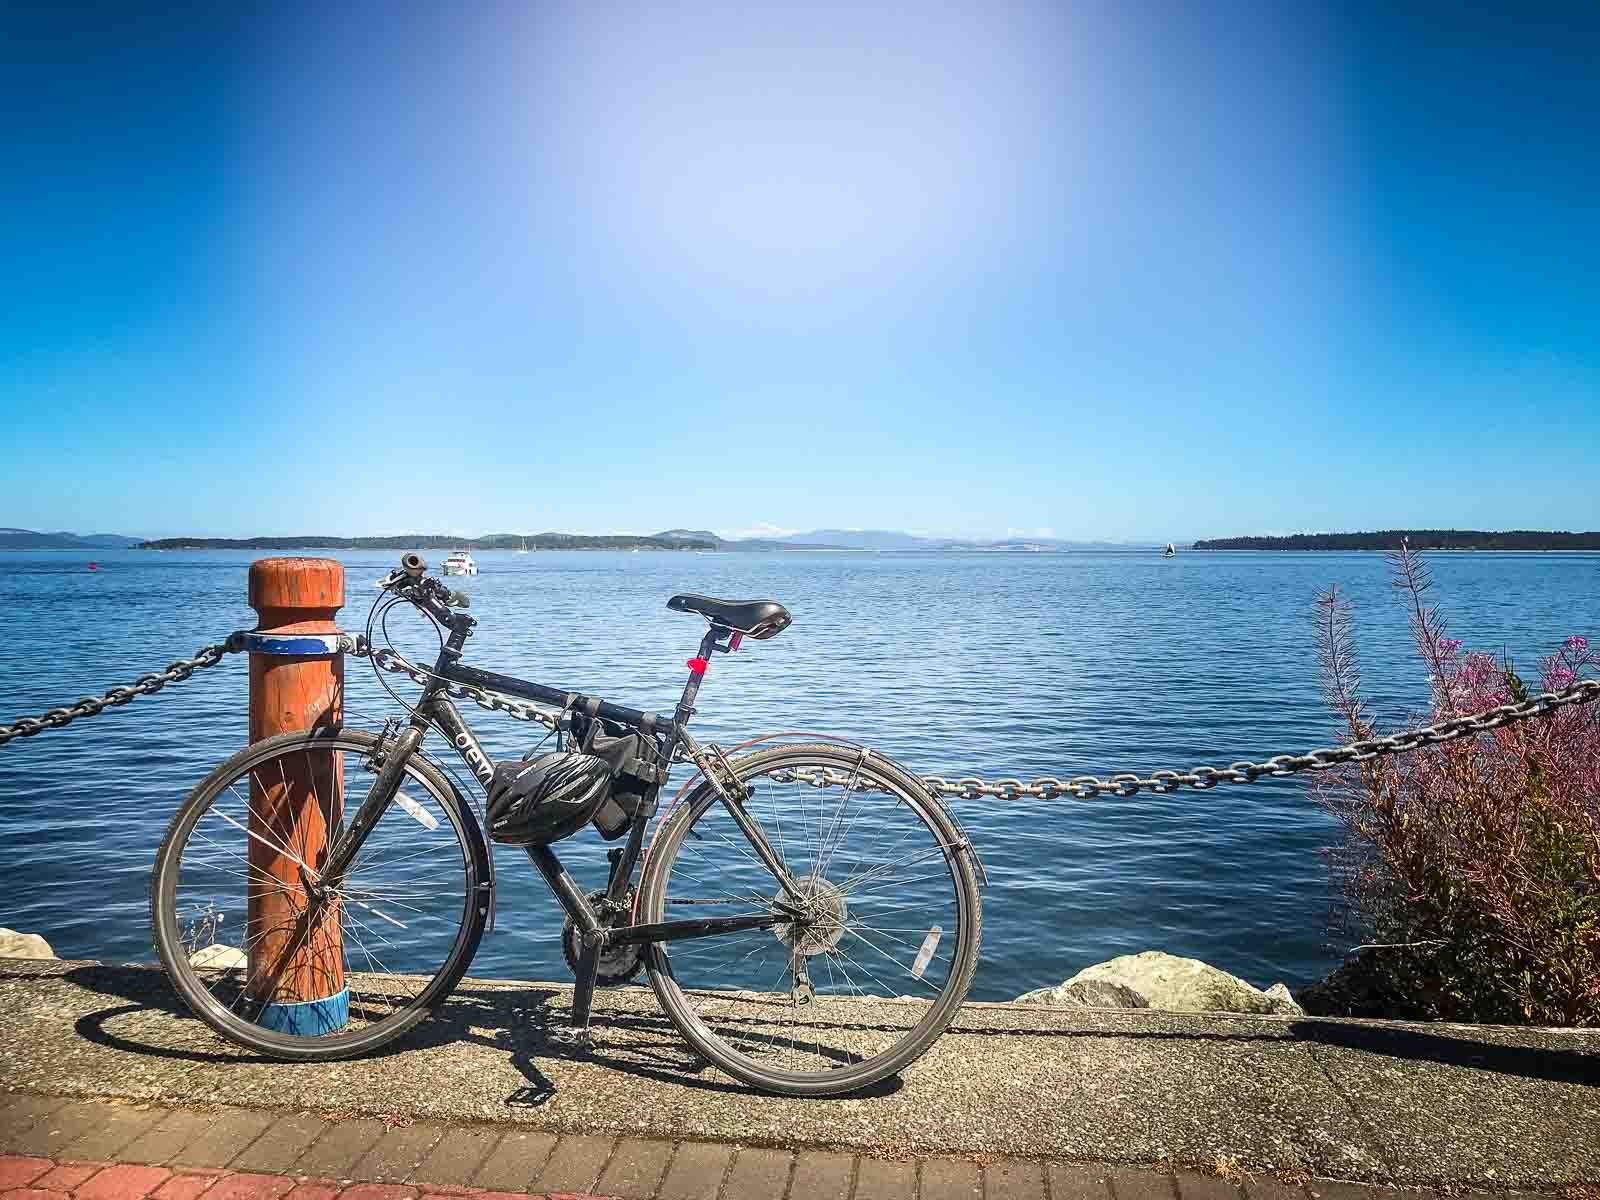 Biking to Victoria From Vancouver - My First Overnight Cycling Trip